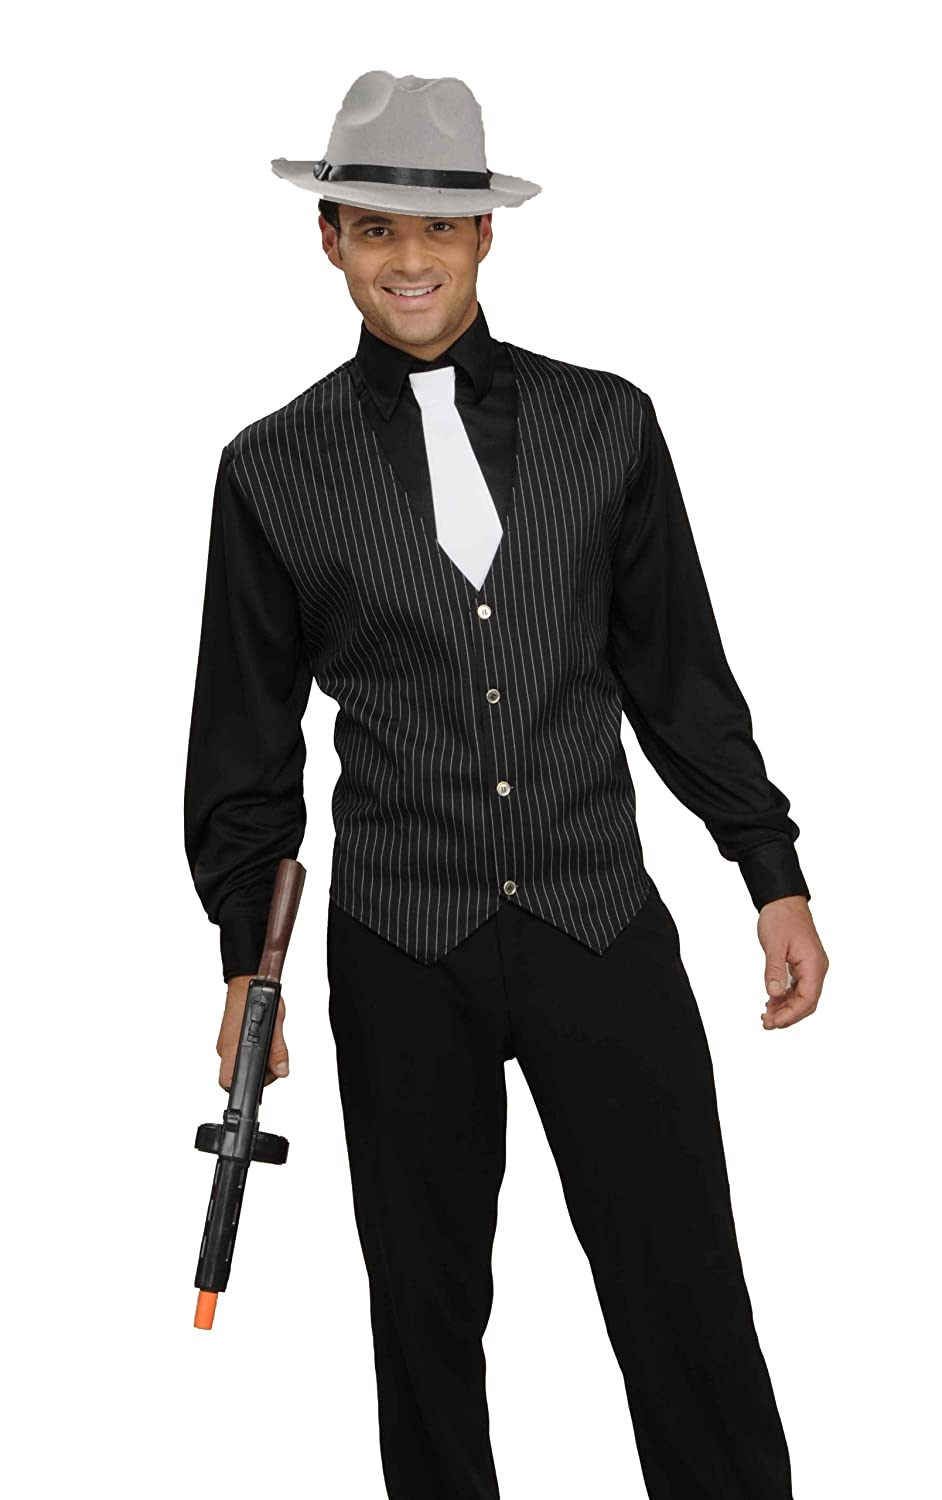 Men's Swing Dance Clothing to Keep You Cool Mens Gangster Shirt Vest And Tie Costume $41.40 AT vintagedancer.com